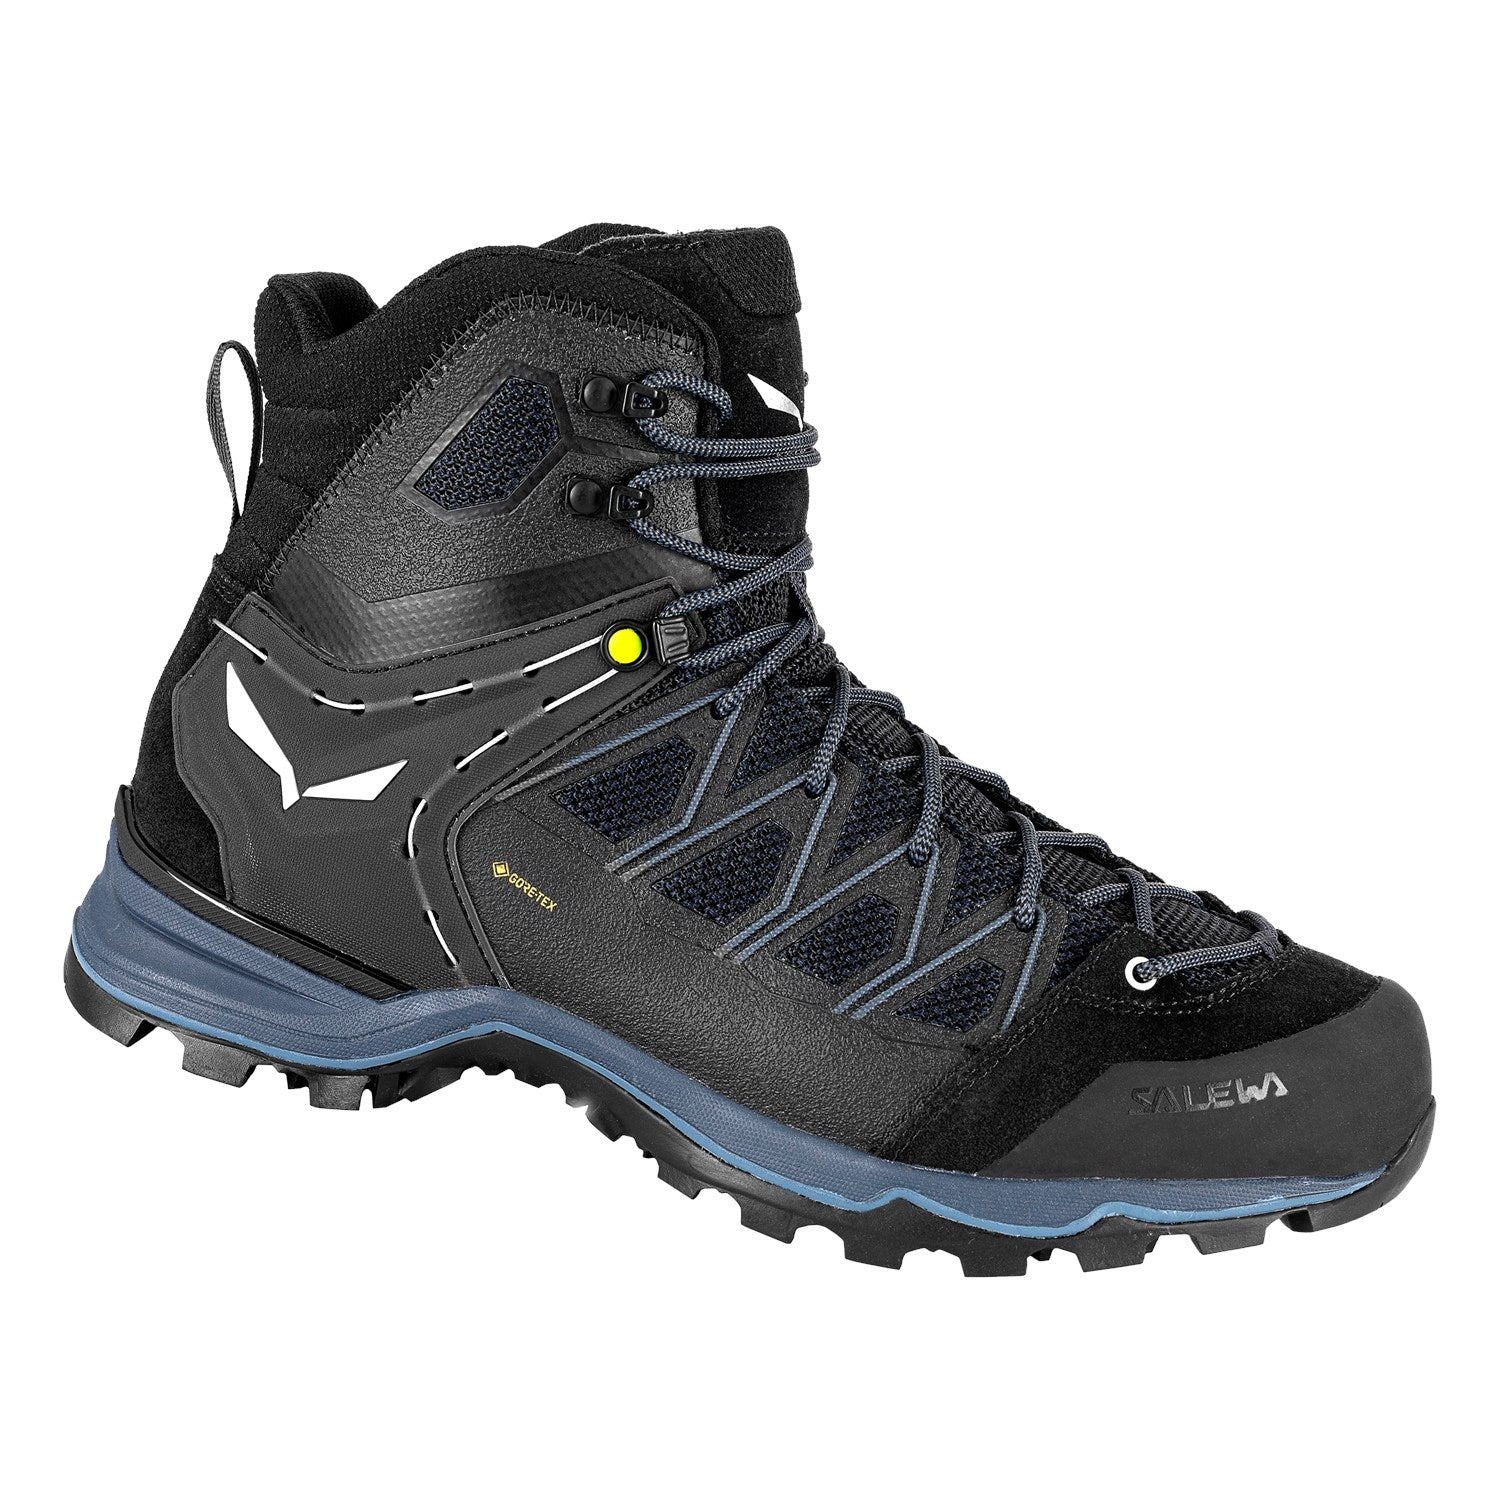 Mountain Trainer Lite Mid GTX - Men's